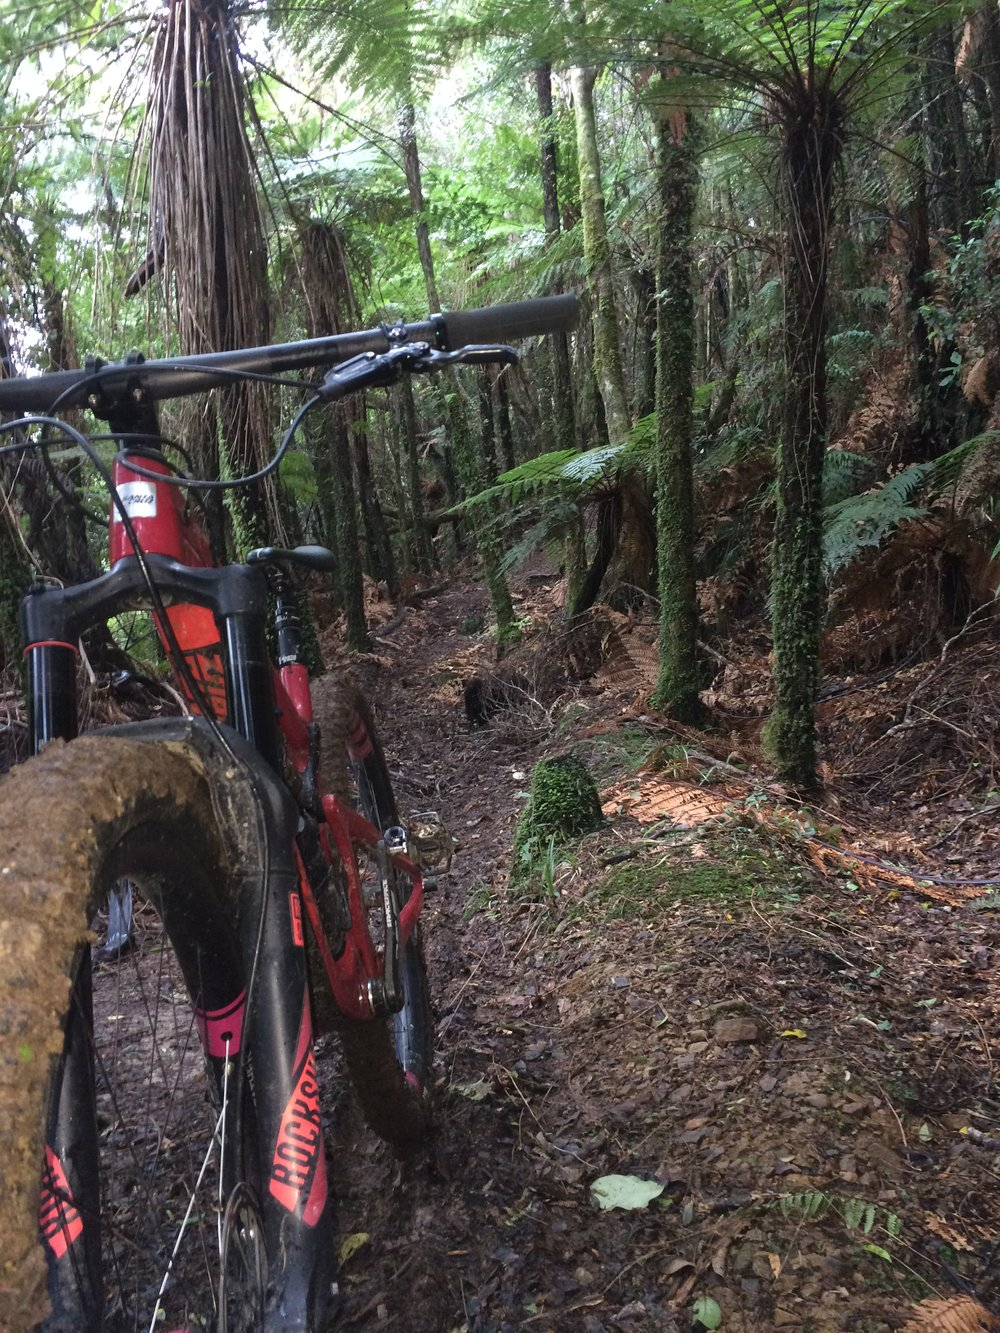 Technical, damp, dark, native, quiet, loamy, slippery and fun. If that sounds like you, then the Akas is your kind of place.